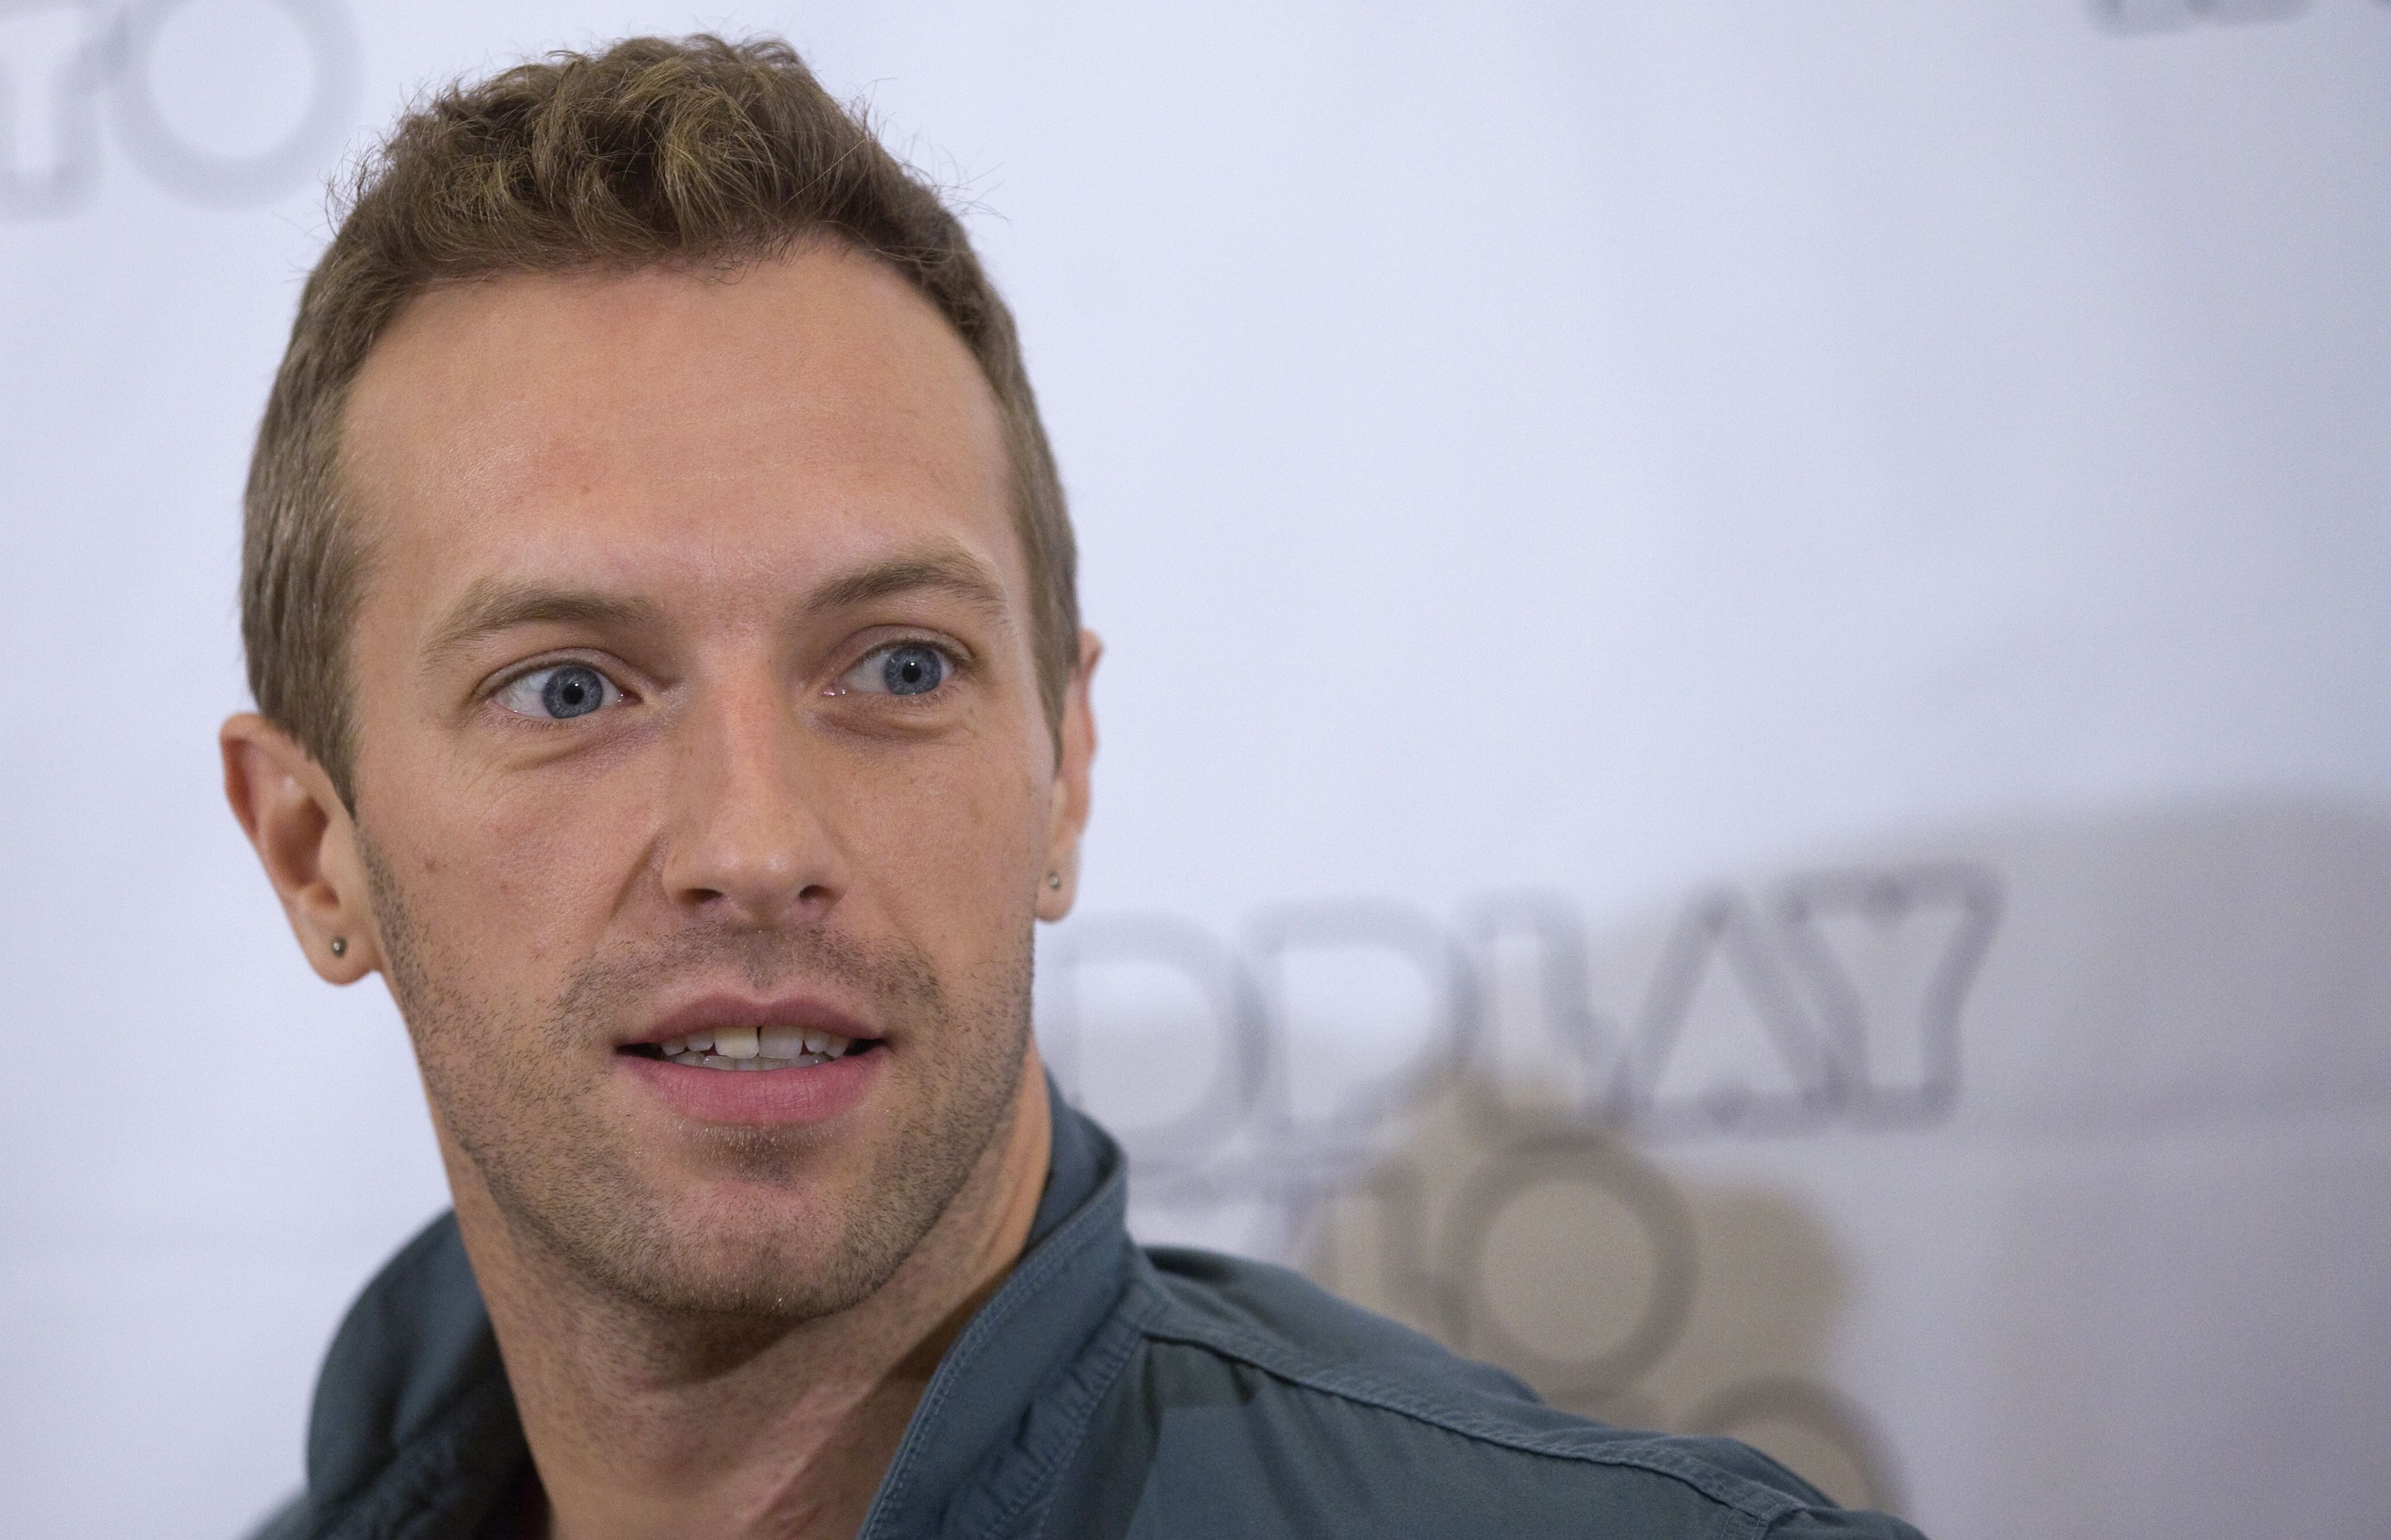 chris martin widescreen wallpaper 56950